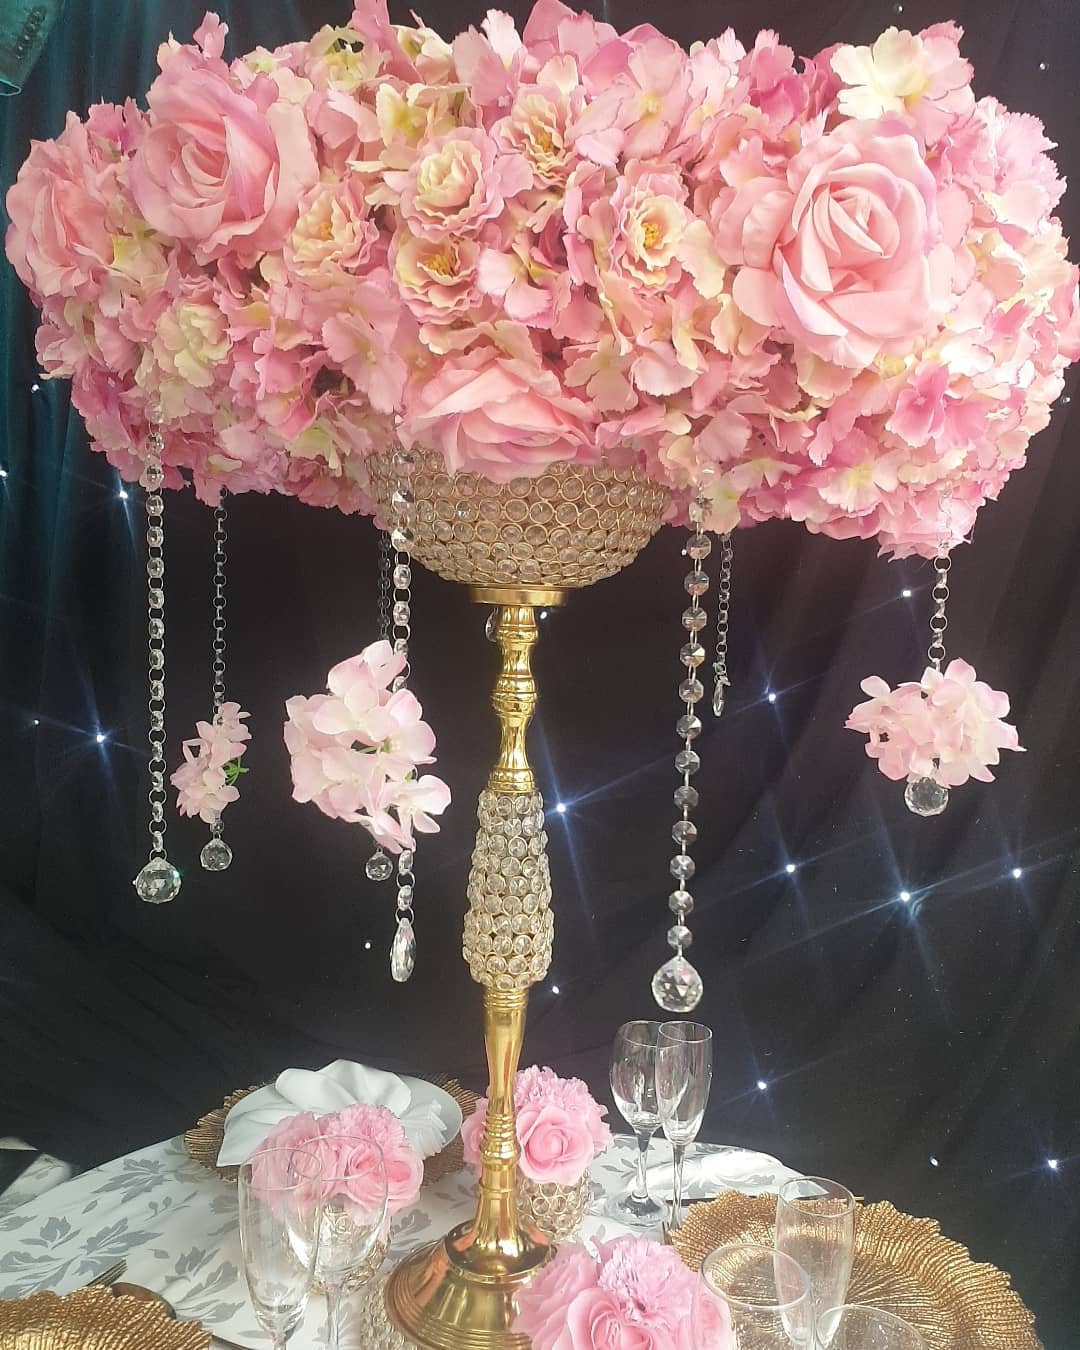 Party equipment hire & bouquet viewing